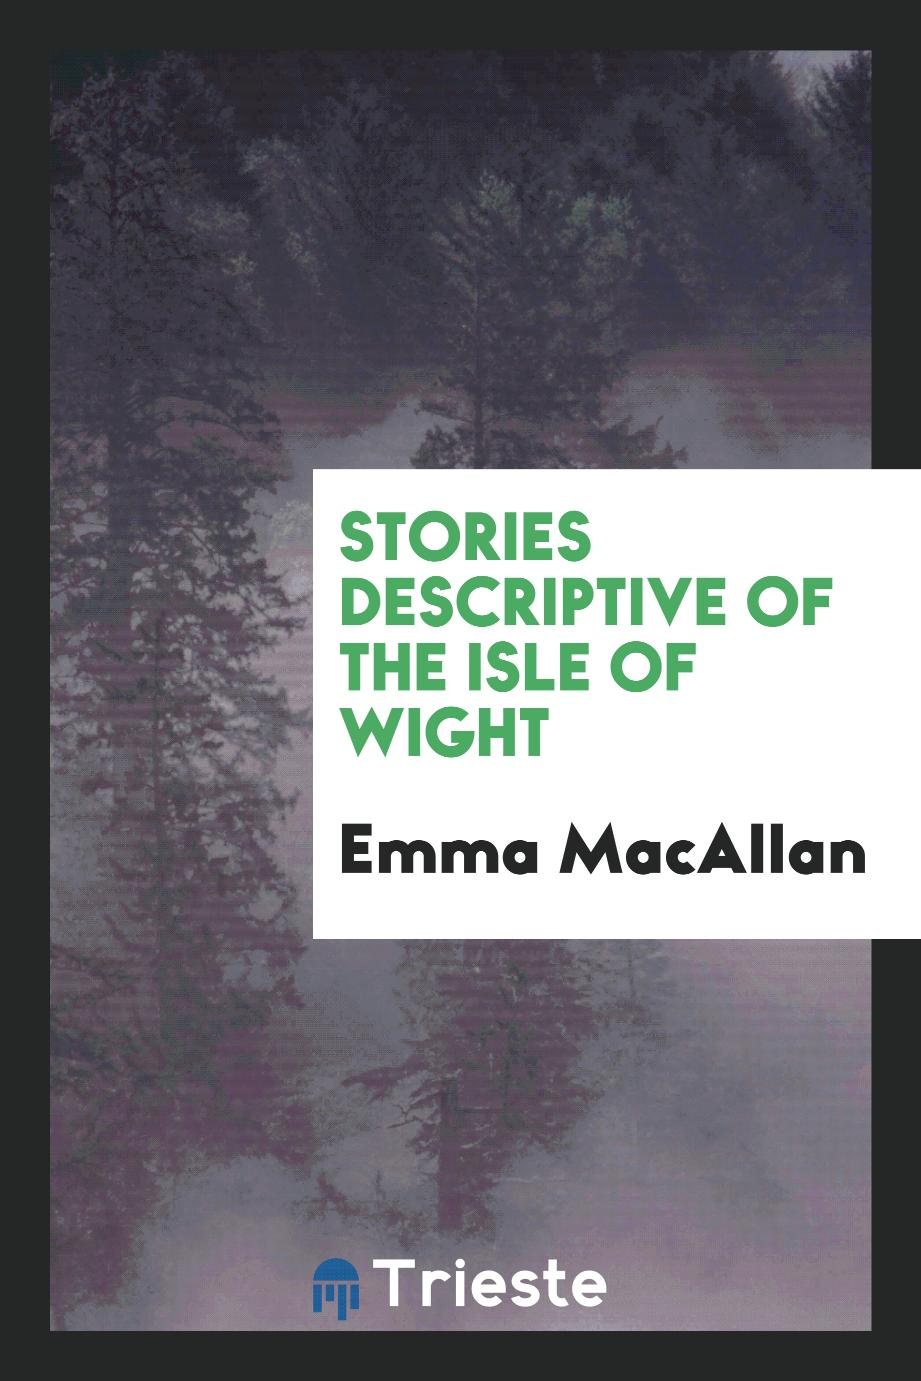 Stories Descriptive of the Isle of Wight